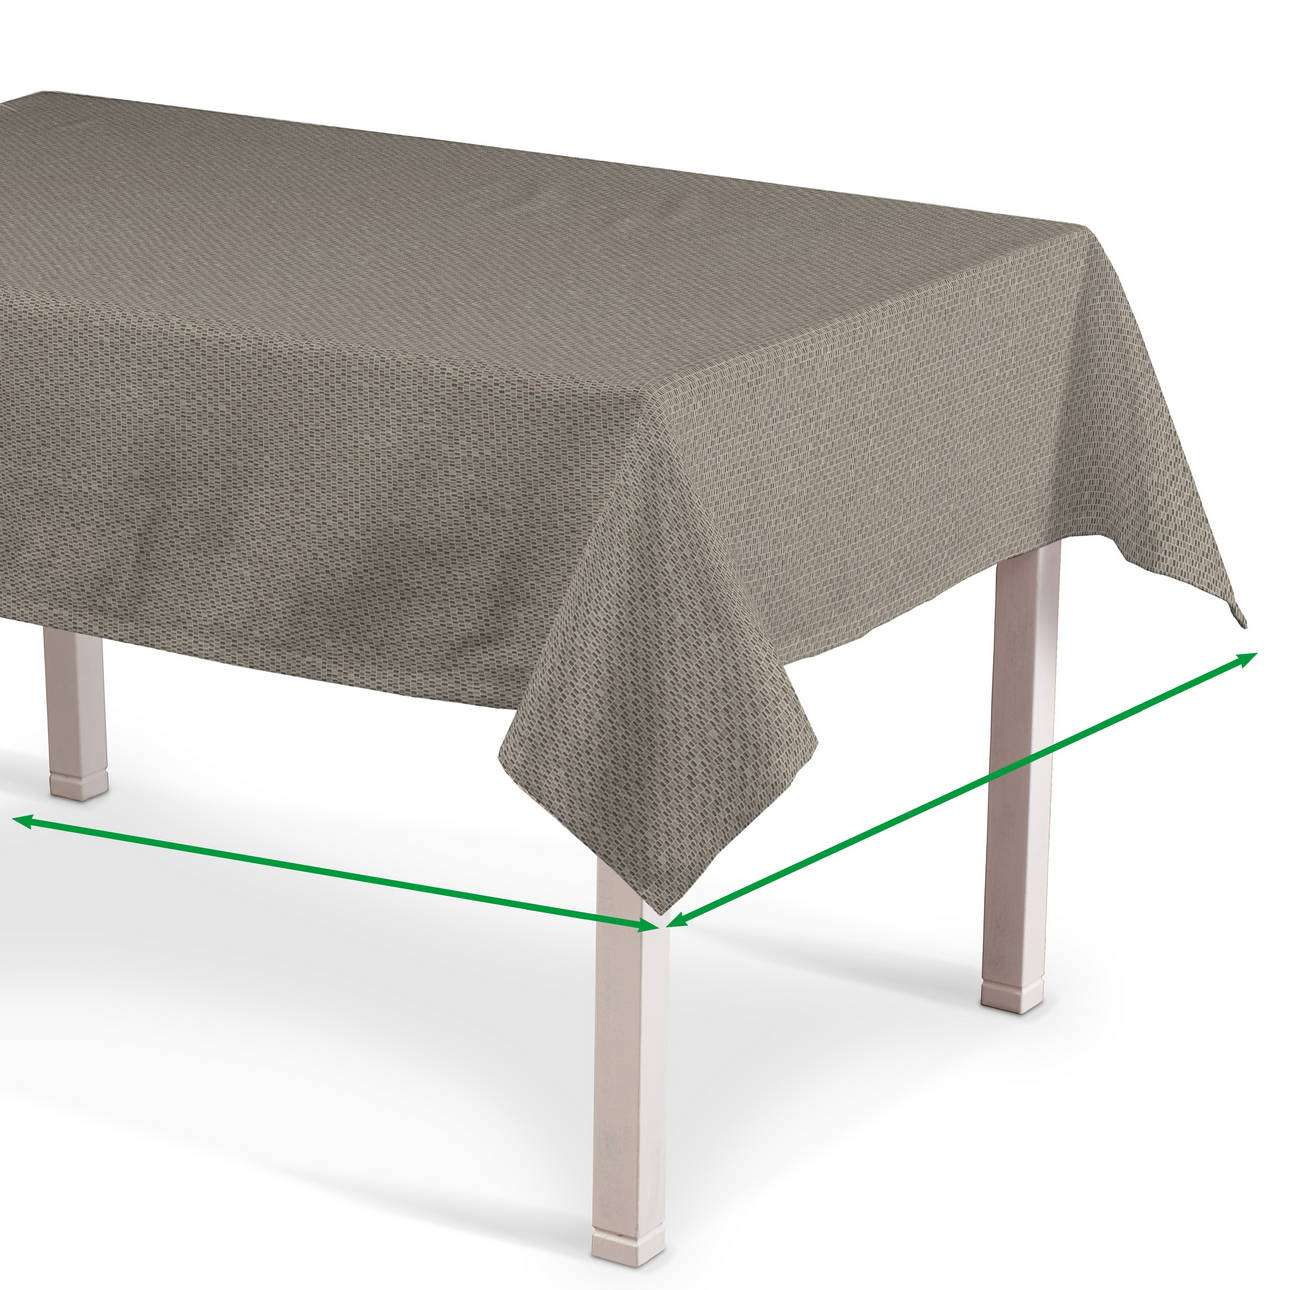 Rectangular tablecloth in collection Retro Glam, fabric: 142-82